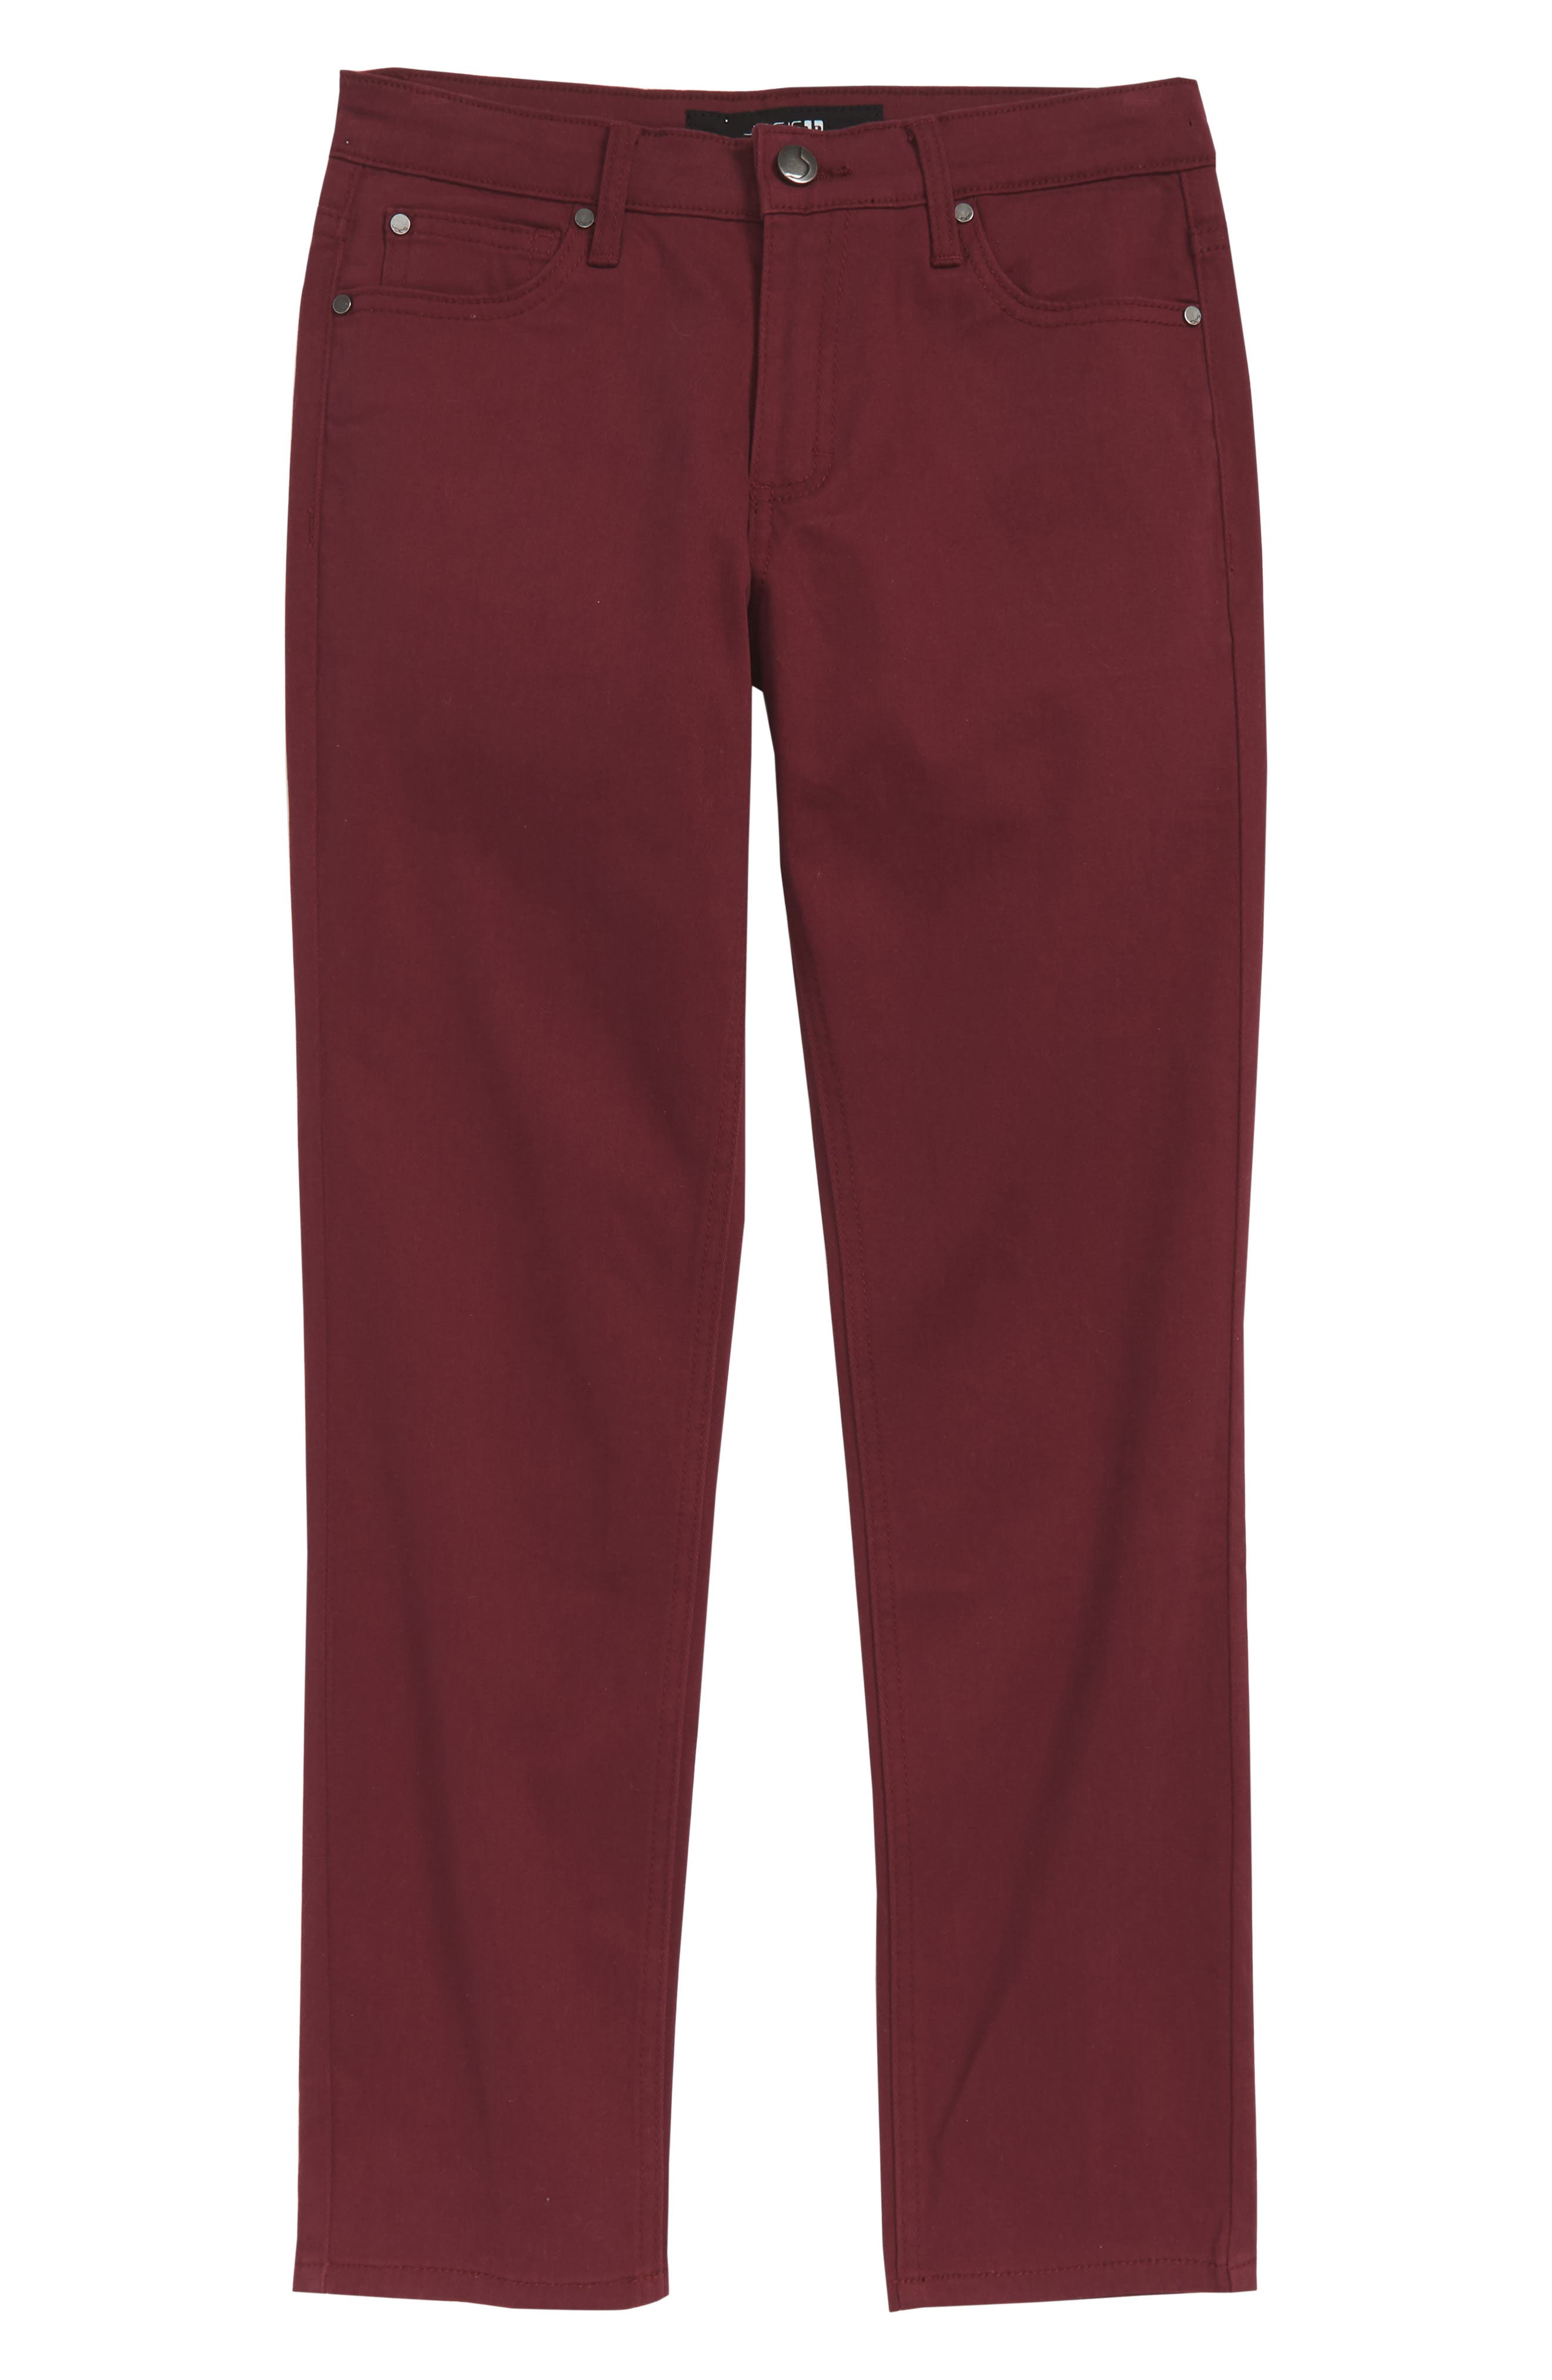 Brixton Straight Leg Stretch Twill Pants,                         Main,                         color, 930